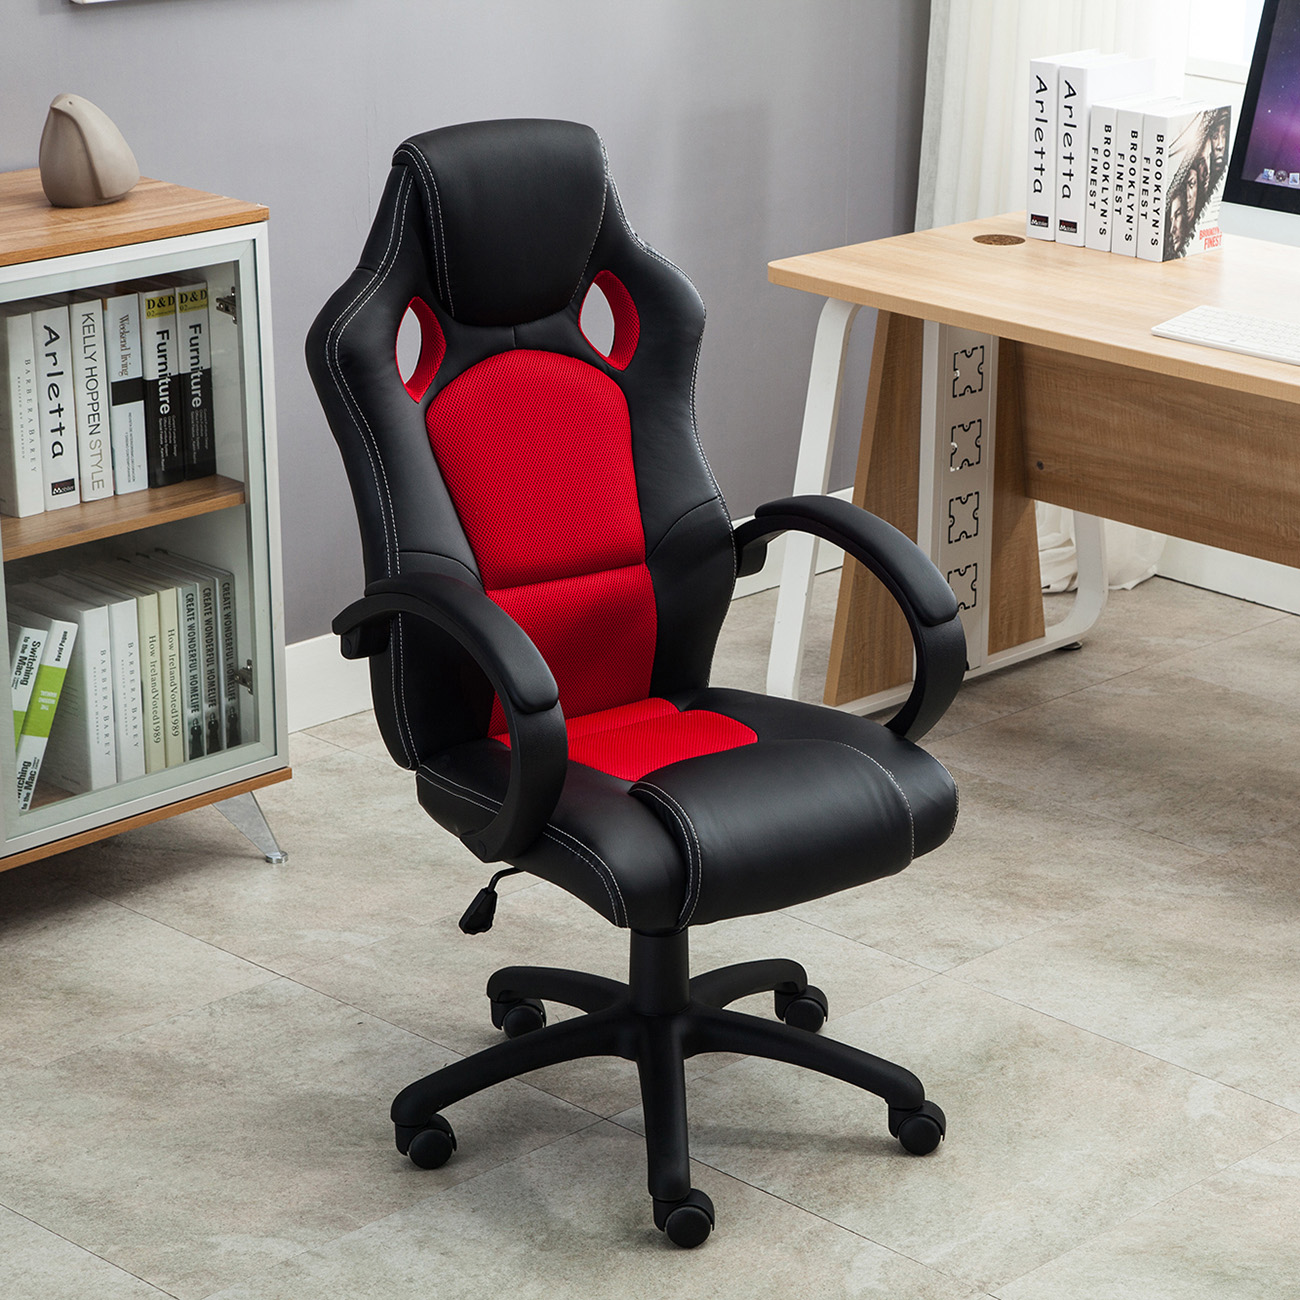 Office Chair Styles High Back Race Car Style Bucket Seat Office Desk Chair